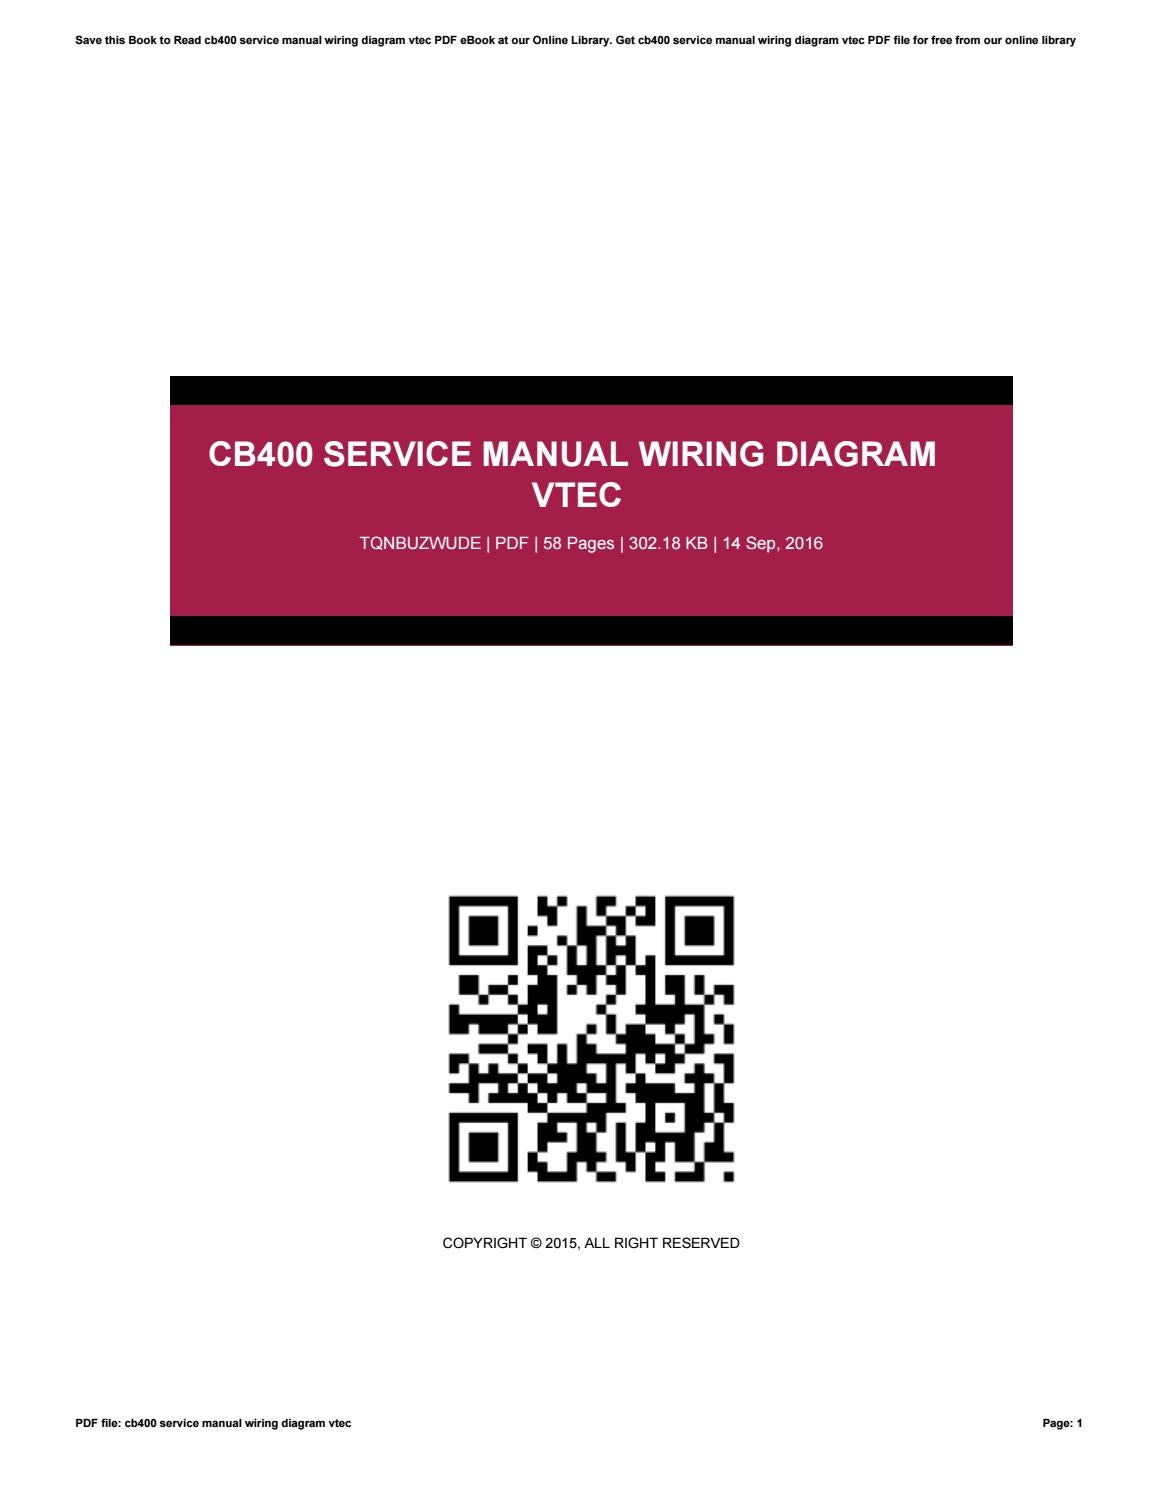 Cb400 Service Manual Wiring Diagram Vtec By Dianne Issuu